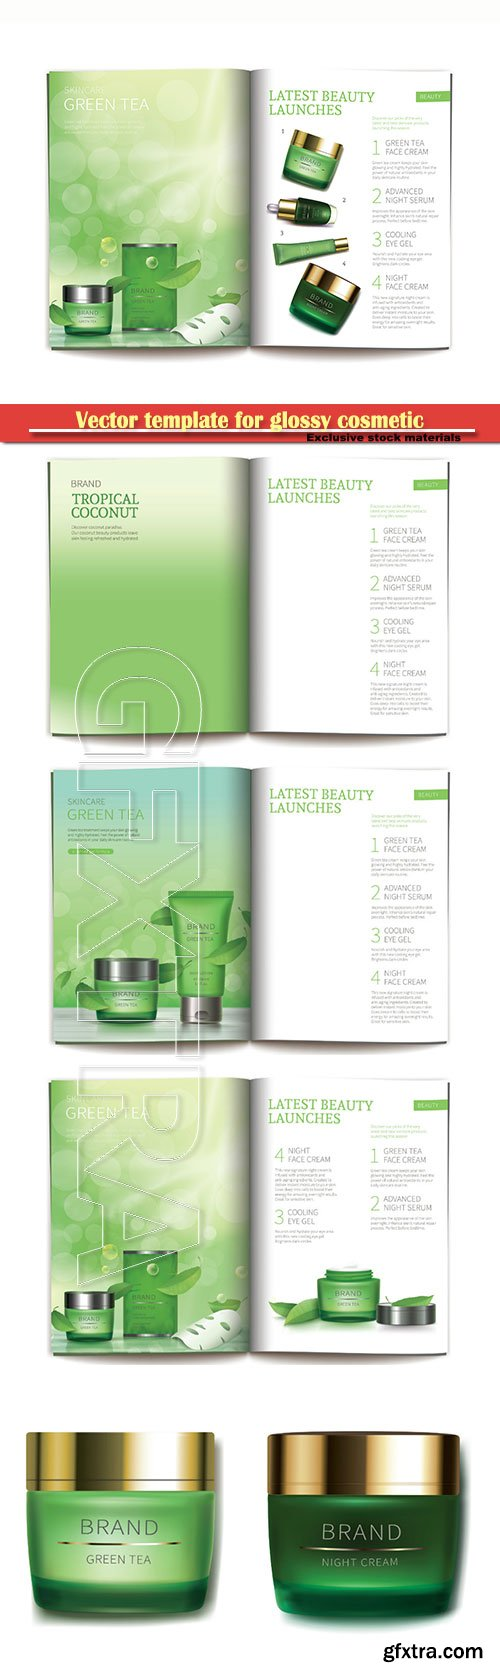 Vector template for glossy cosmetic magazine with natural cosmetics